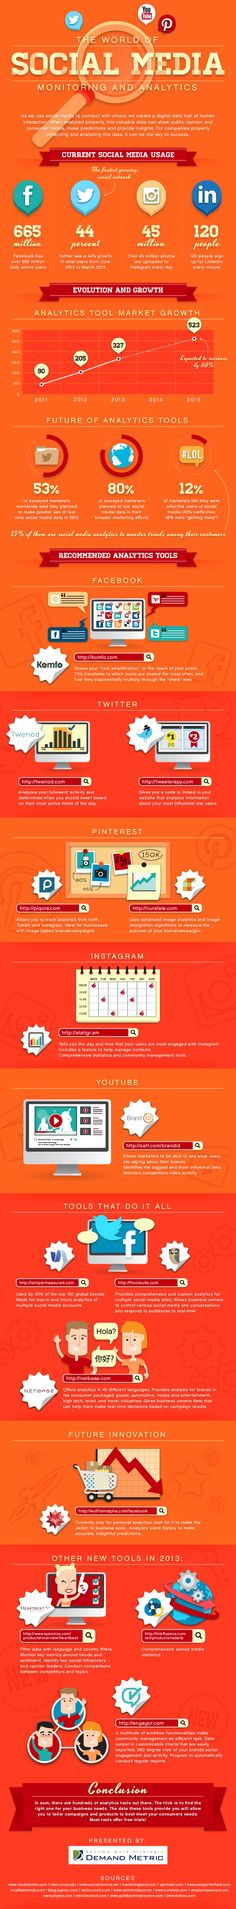 Infographics on how to monitor your social media accounts #infographics #socialmedia #monitoring #9dotstrategies